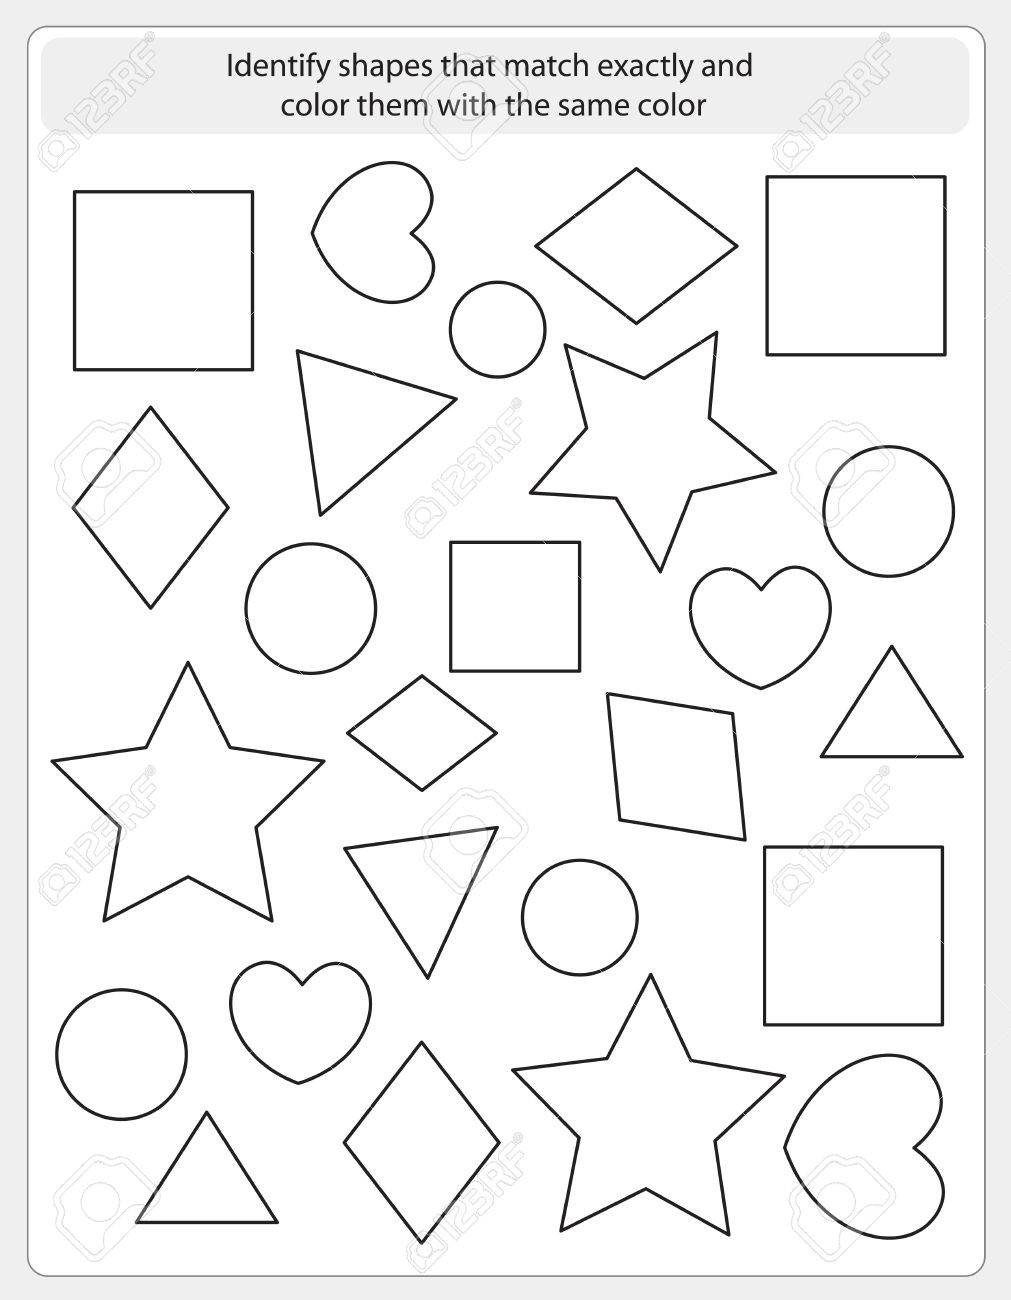 Identify Shapes Worksheets Kids Worksheet with Shapes to Match and Color Same Shape